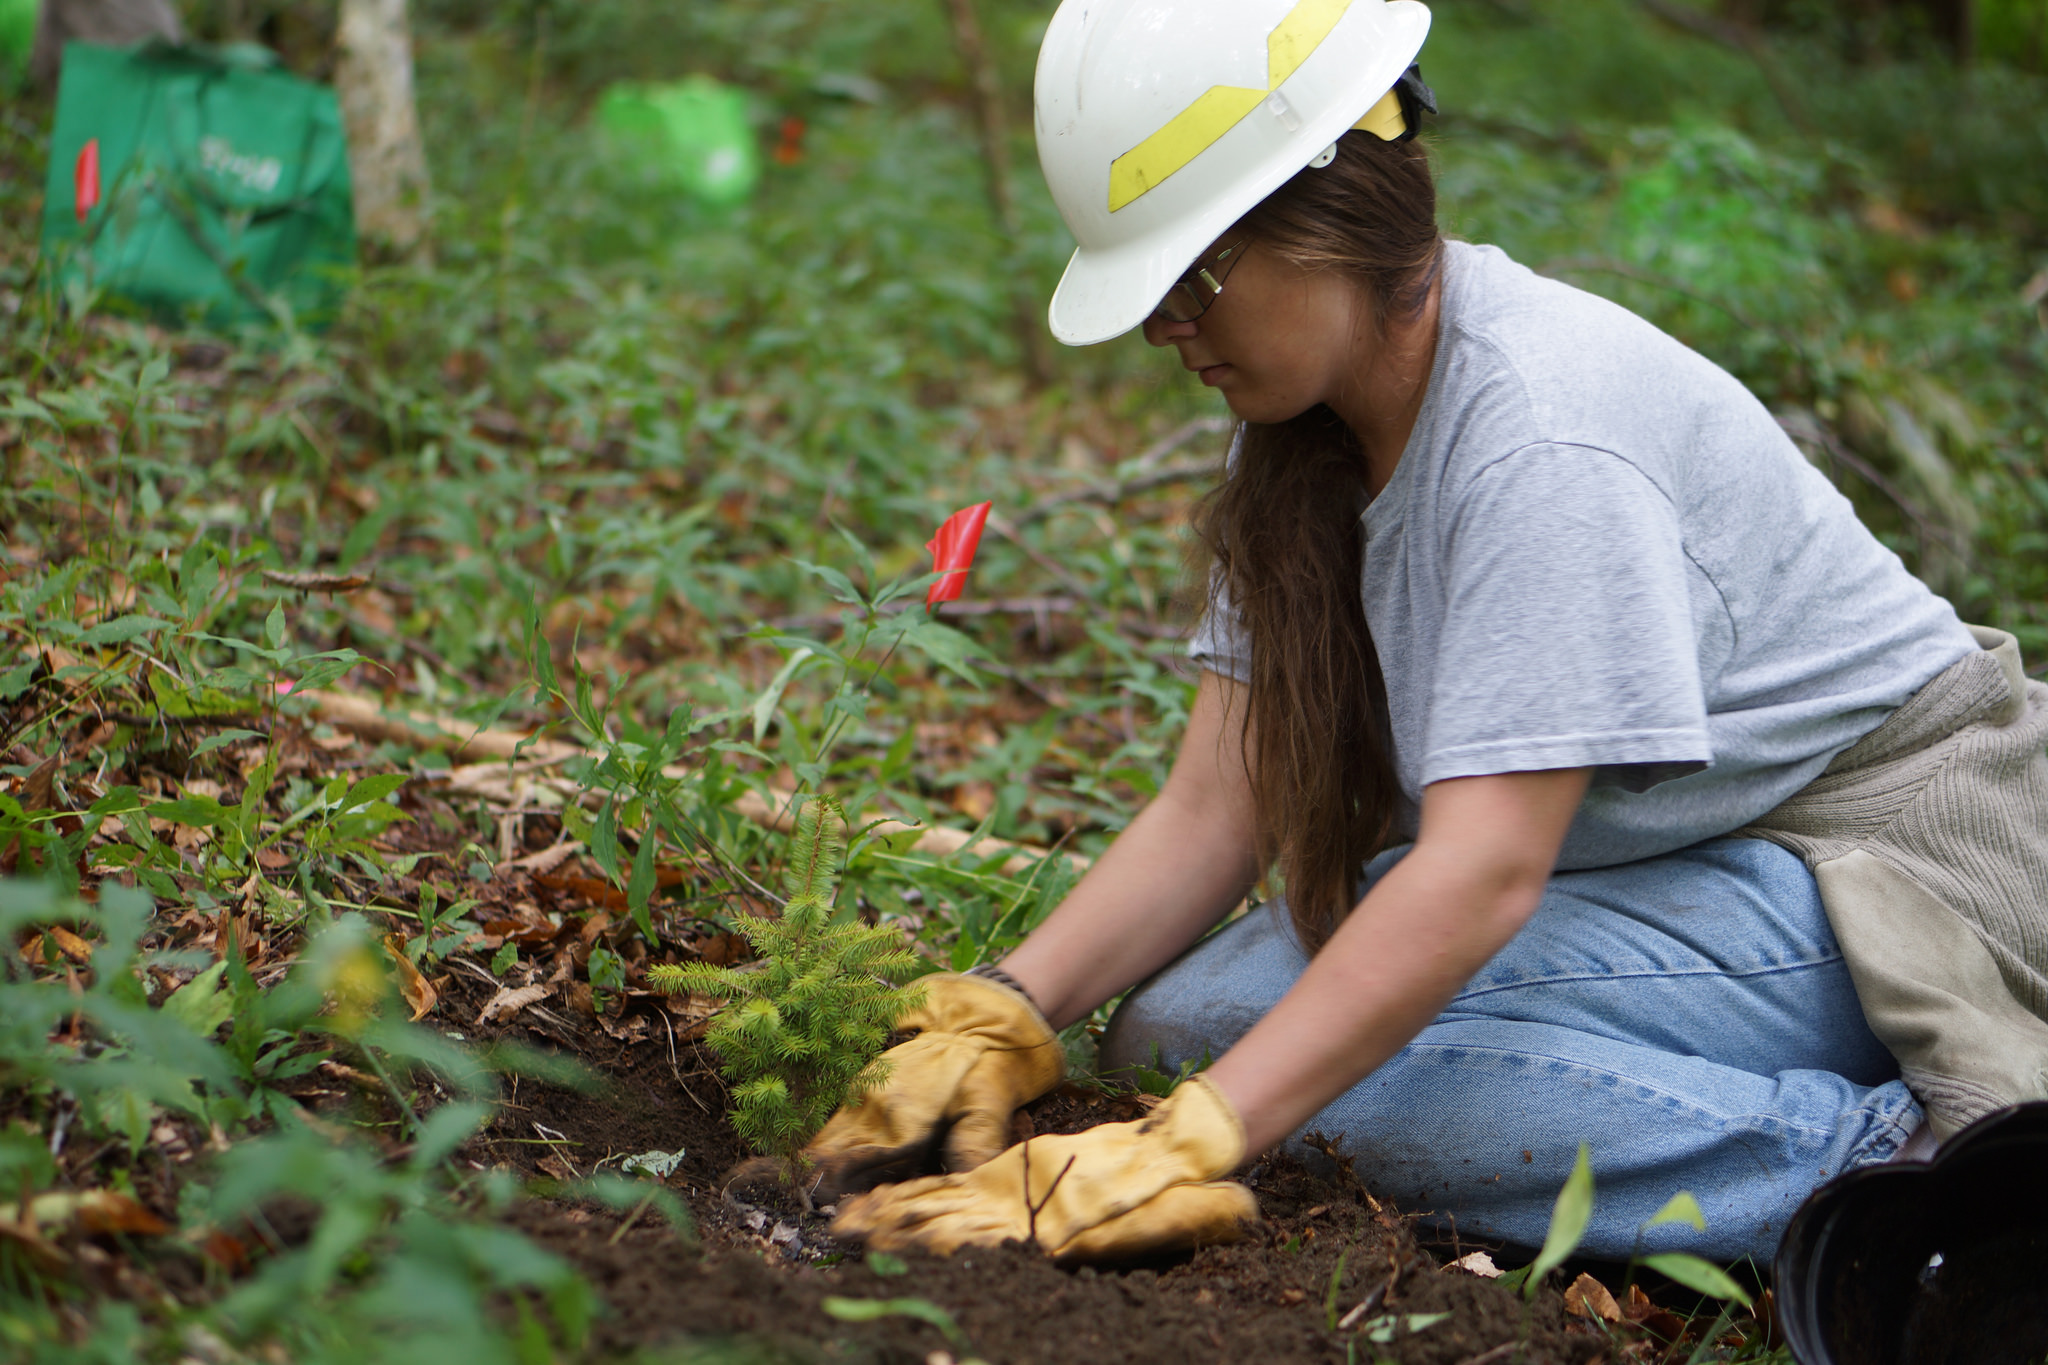 Vocational schools and community colleges teach plants through horticulture, agriculture, forestry, nursery and turf management and landscaping. - Thanks to U.S. Fish and Wildlife Service Southeast Region; Haywood Community College.